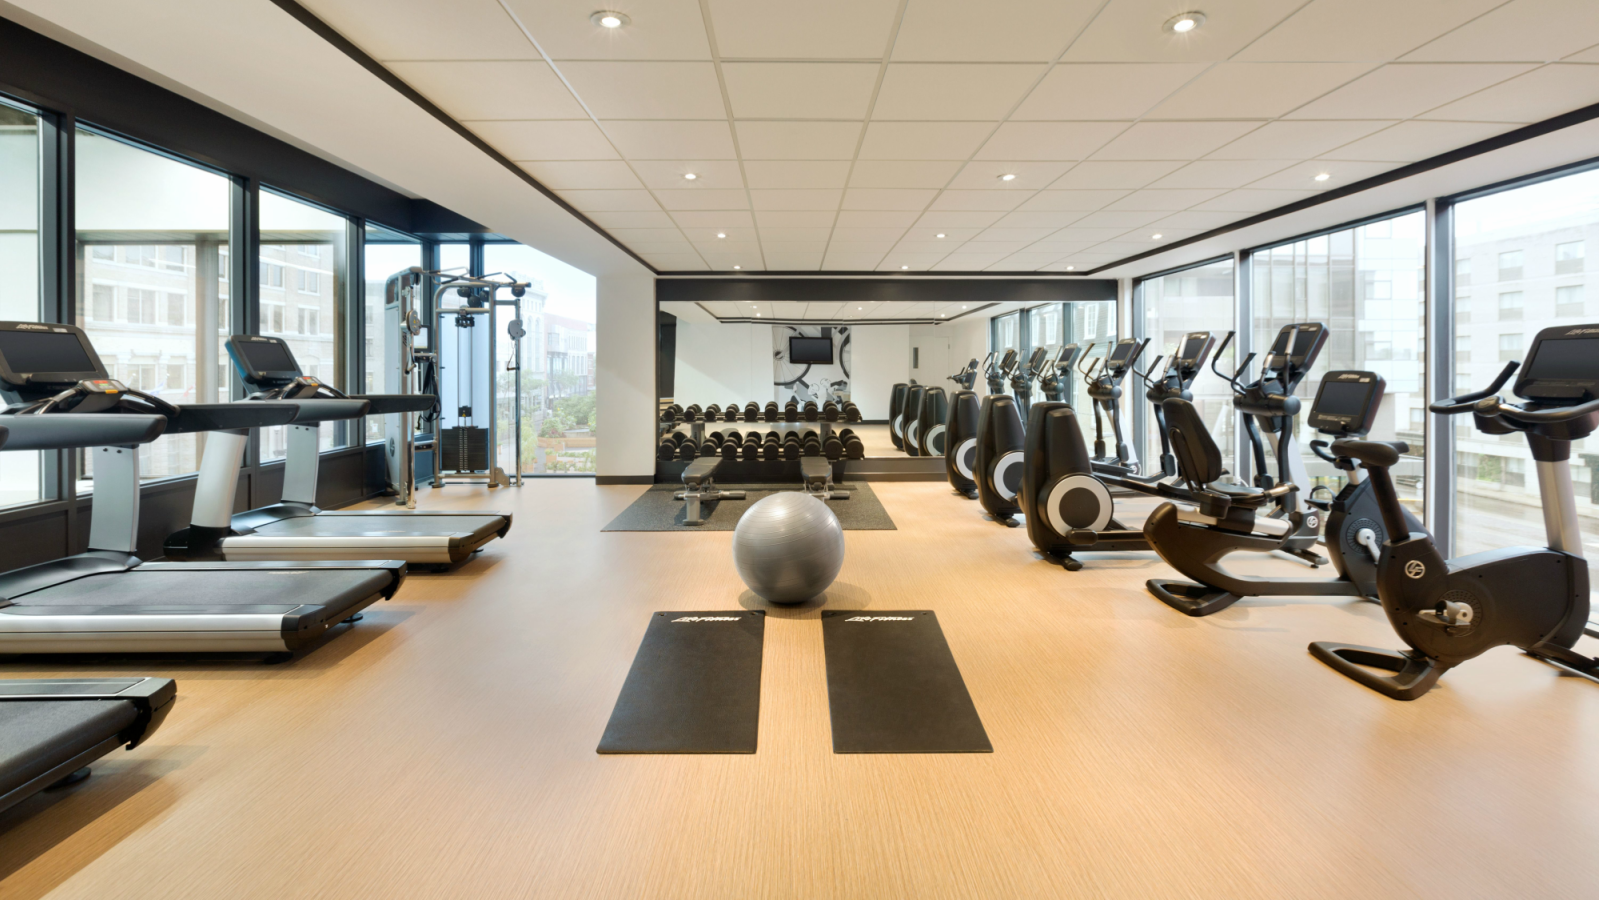 Fitness Center | Hotel PUR, Quebec, a Tribute Portfolio Hotel